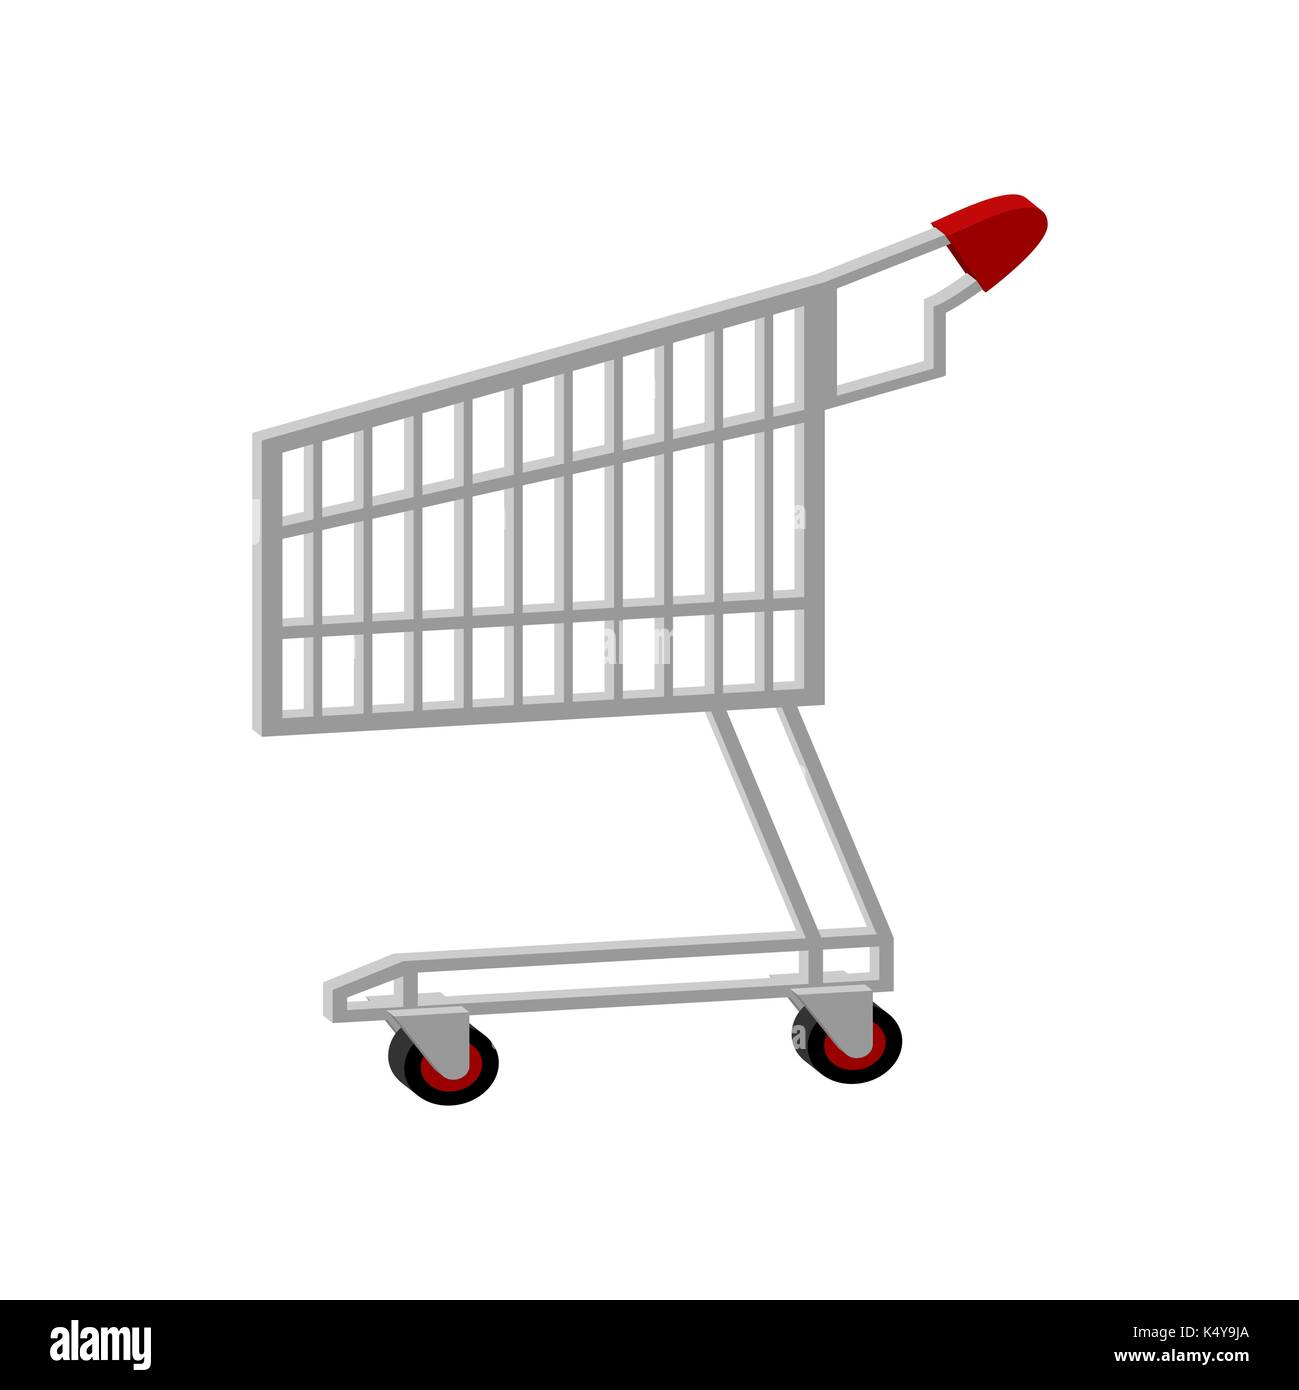 shopping cart isolated. Supermarket trolley sign icon. Vector illustration - Stock Vector